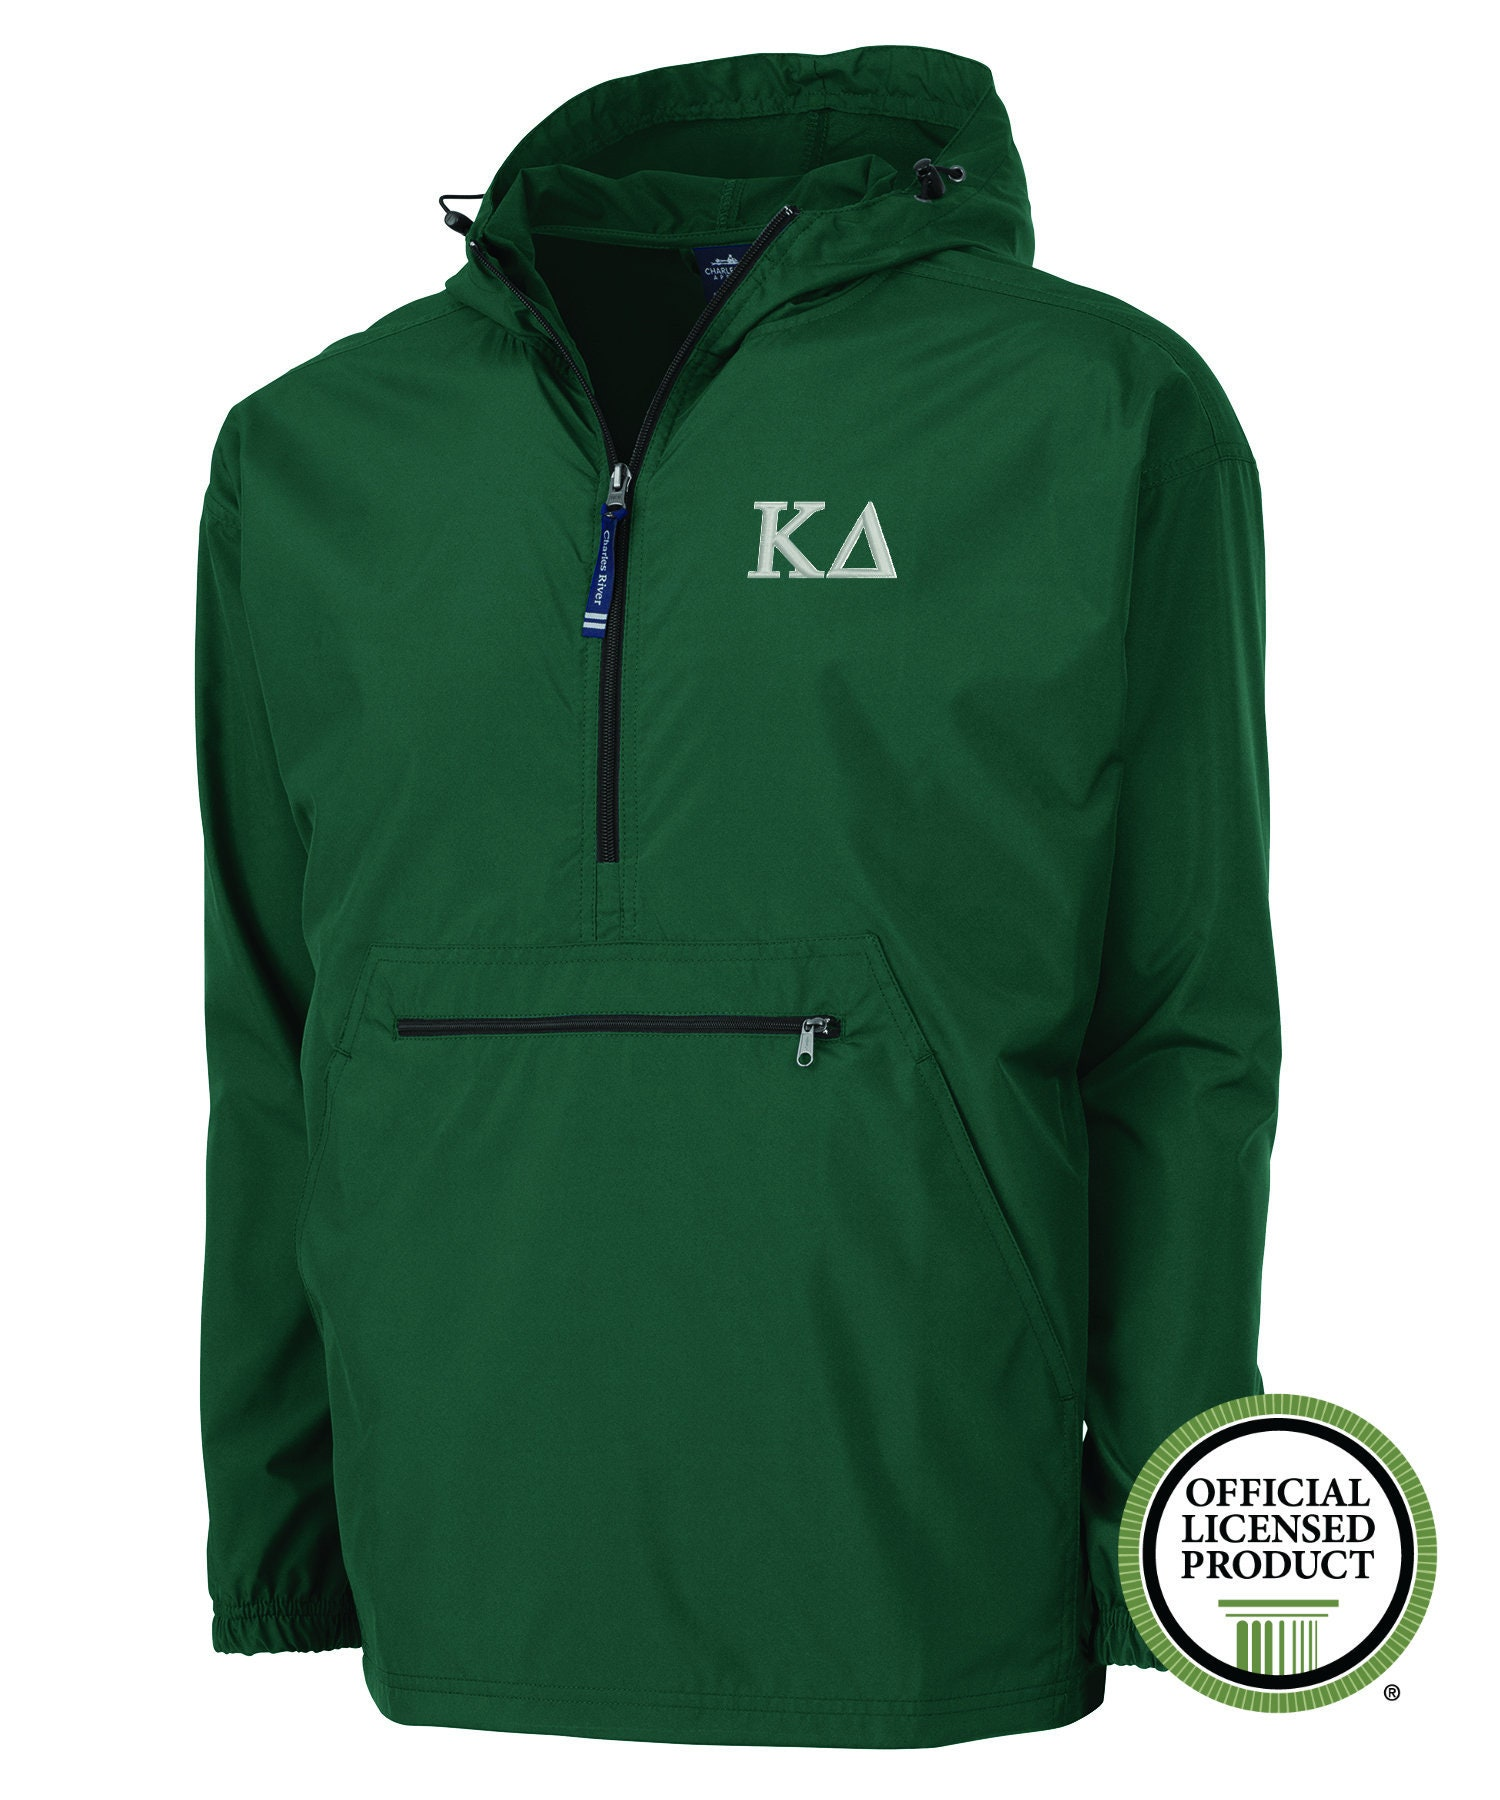 b2c28cffb Kappa Delta Charles River Rain Jacket KD Pack and Go Jacket | Etsy